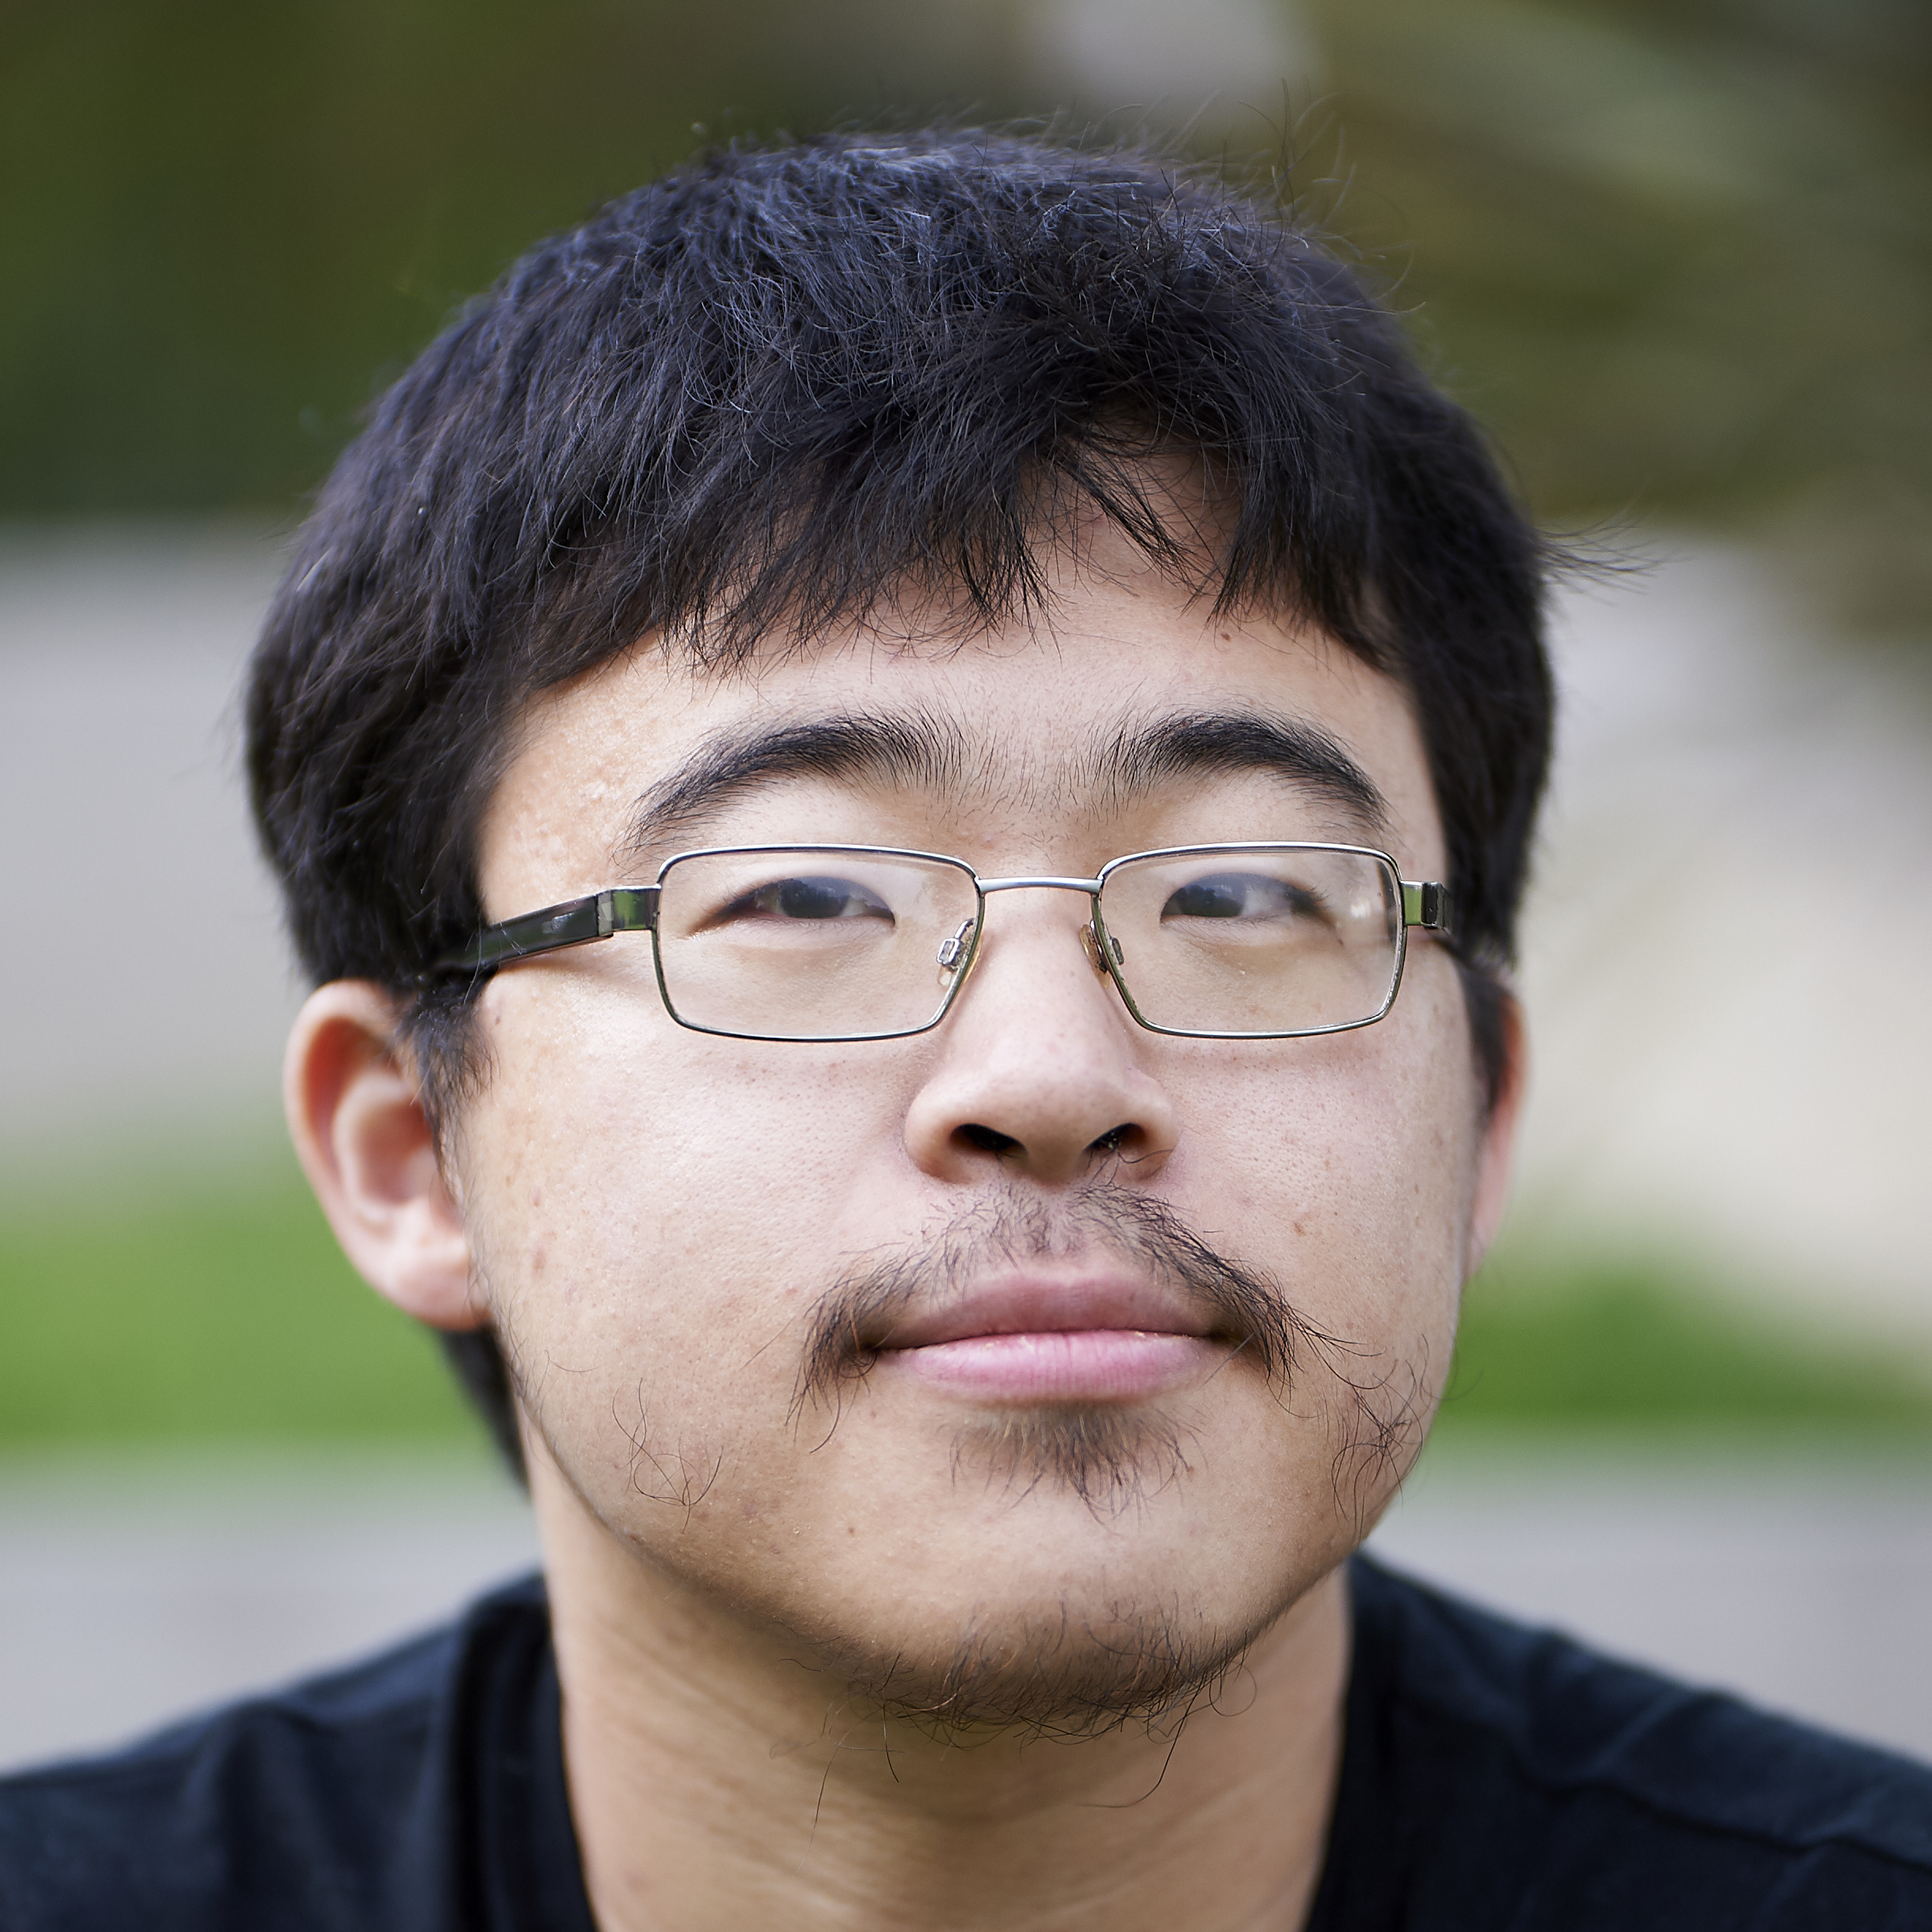 - Bayley WangCTOMIT, Electrical Engineering and Computer Science7 years prior experience as CTO/founder of an educational electronics startup, cash-positive and successfully shipped 5K+ unitsPrevious researcher @ MIT on high-performance optical simulation algorithmsCompetition winner, Putnam/USAMO